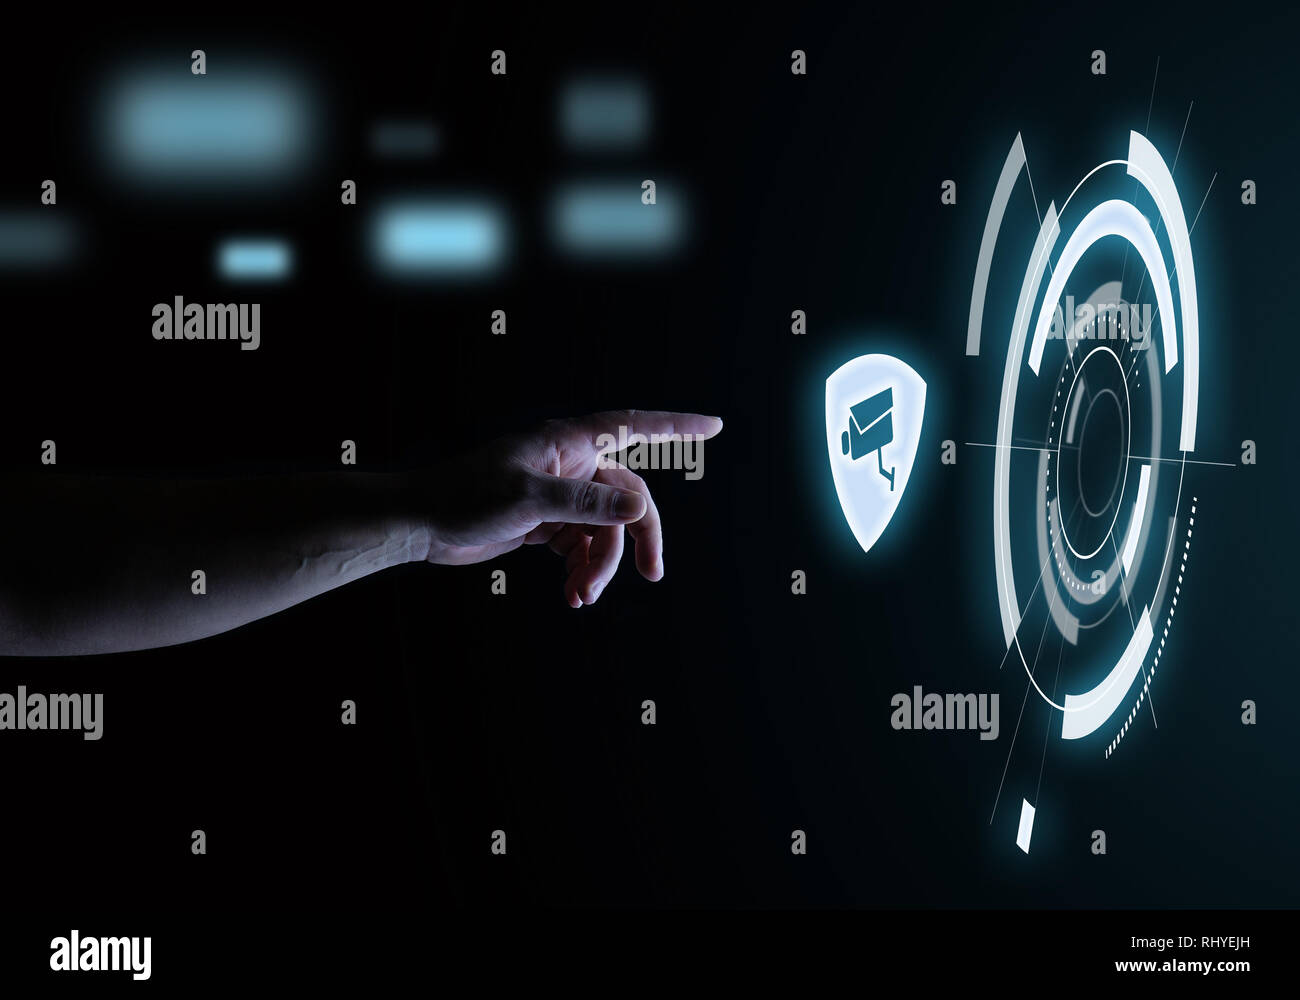 Security System Digital Touch Hologram User Interface Technology Concept Stock Photo